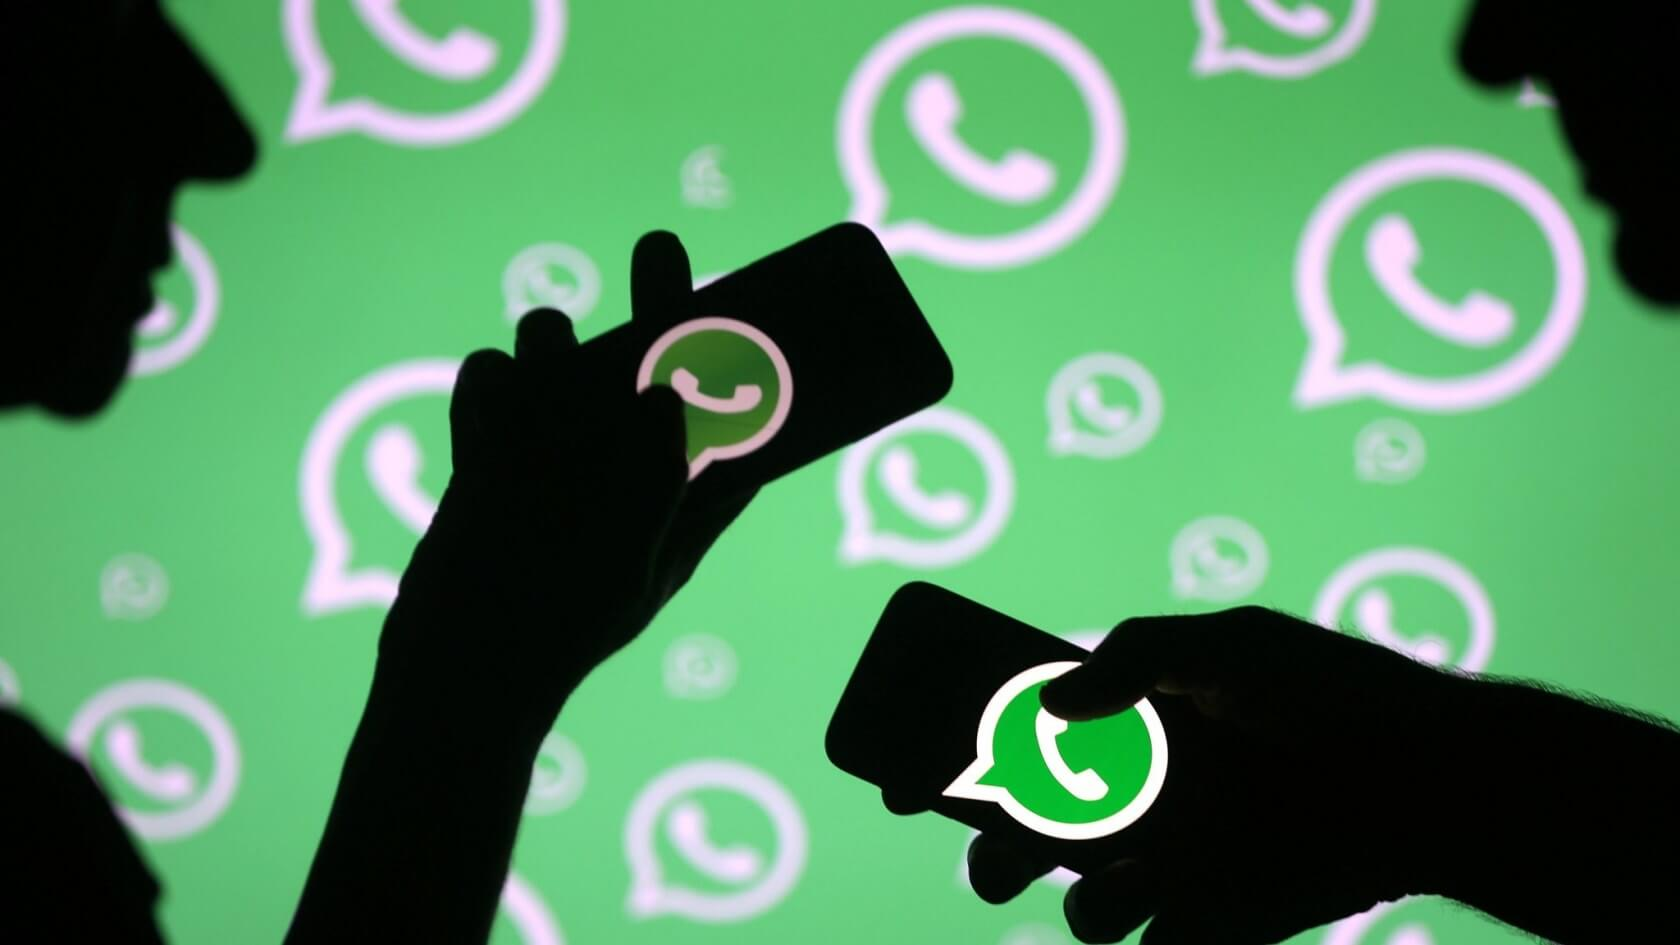 WhatsApp's new privacy settings let you choose who can add you to group chats